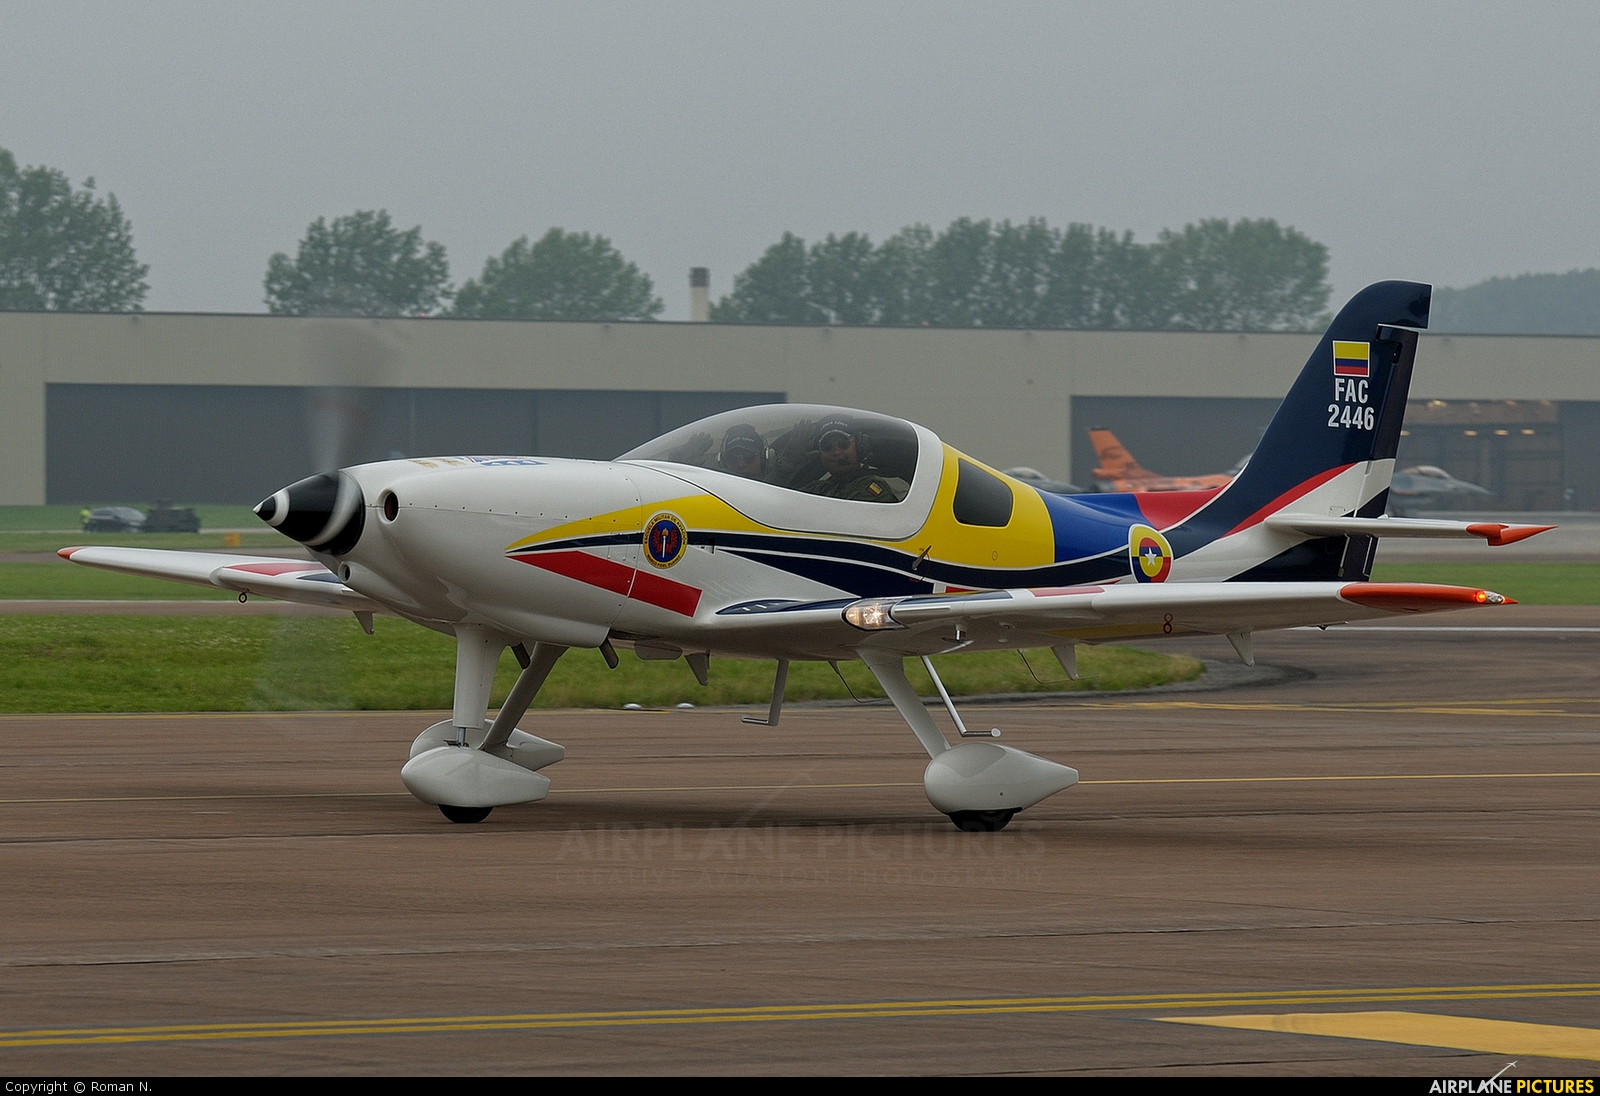 Colombia - Air Force FAC2446 aircraft at Fairford